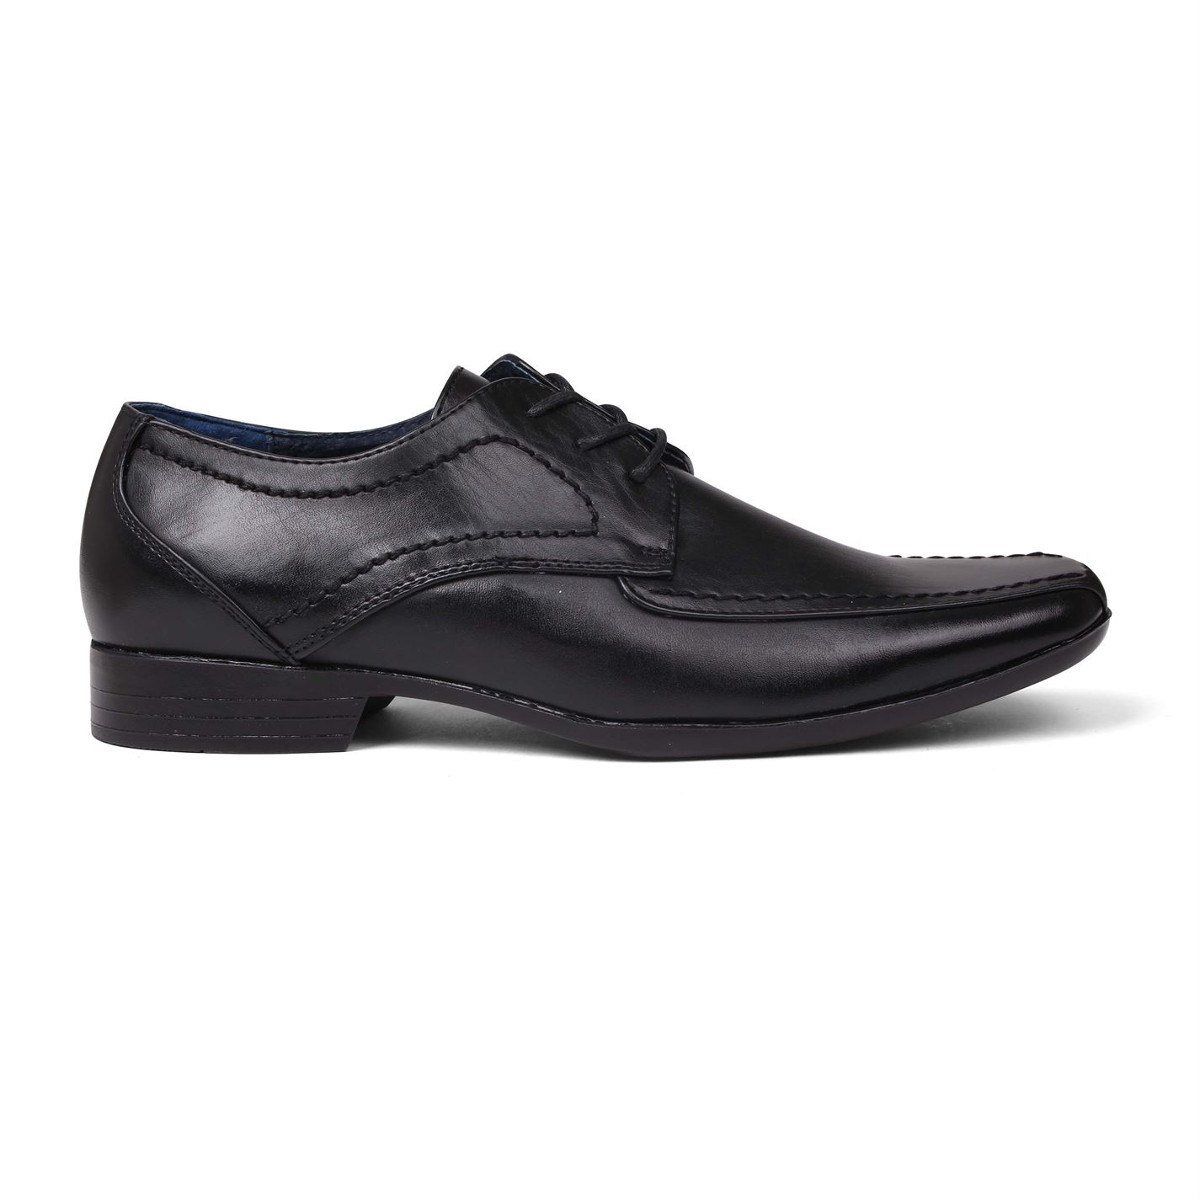 Giorgio Men's Bourne Lace-Up Dress Shoes - Black, 8